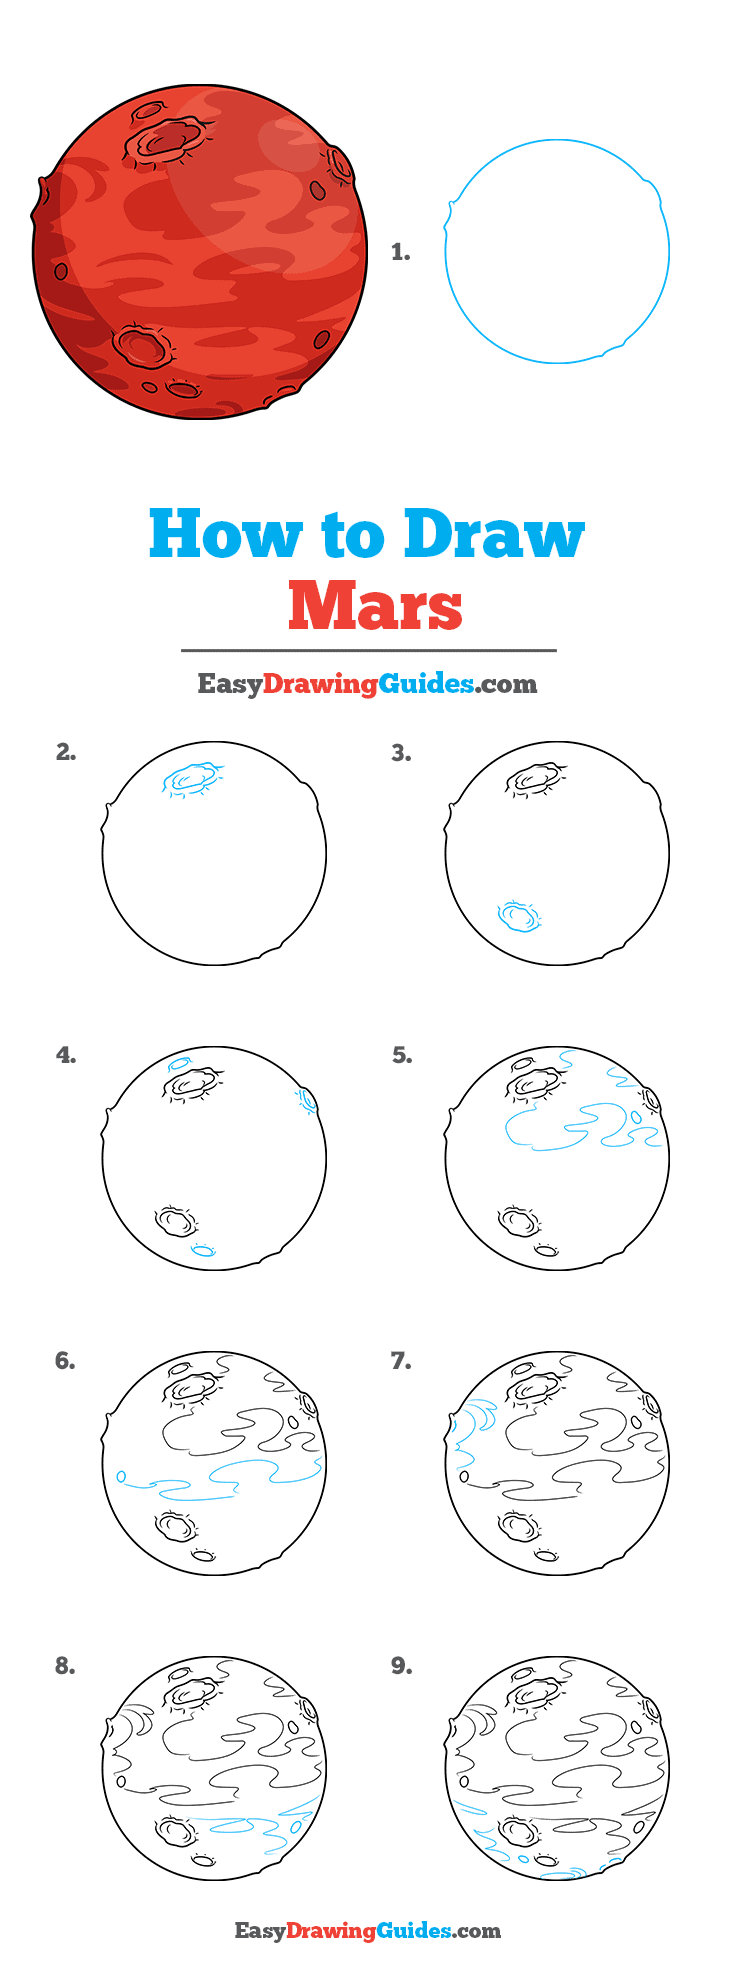 How to Draw Mars